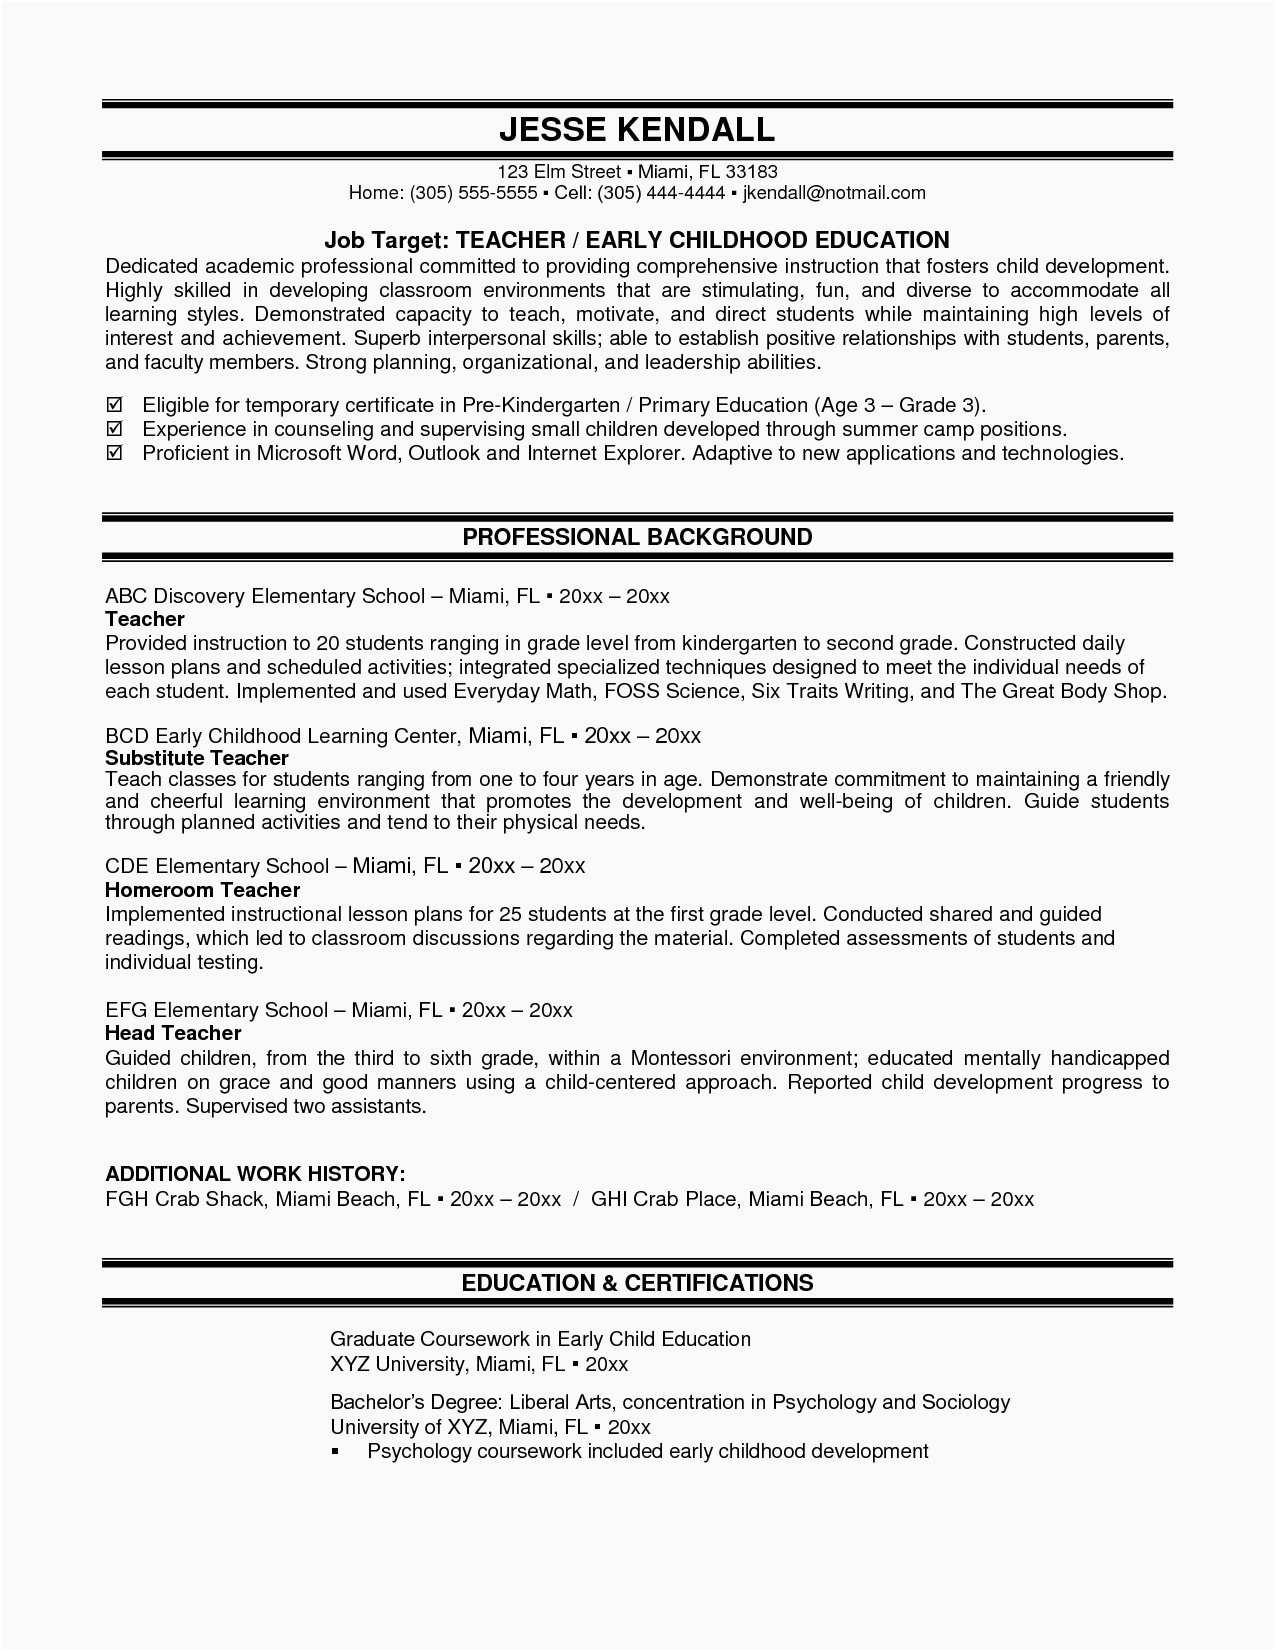 Resume Samples No Experience - 30 New Resume Examples for College Students with No Work Experience